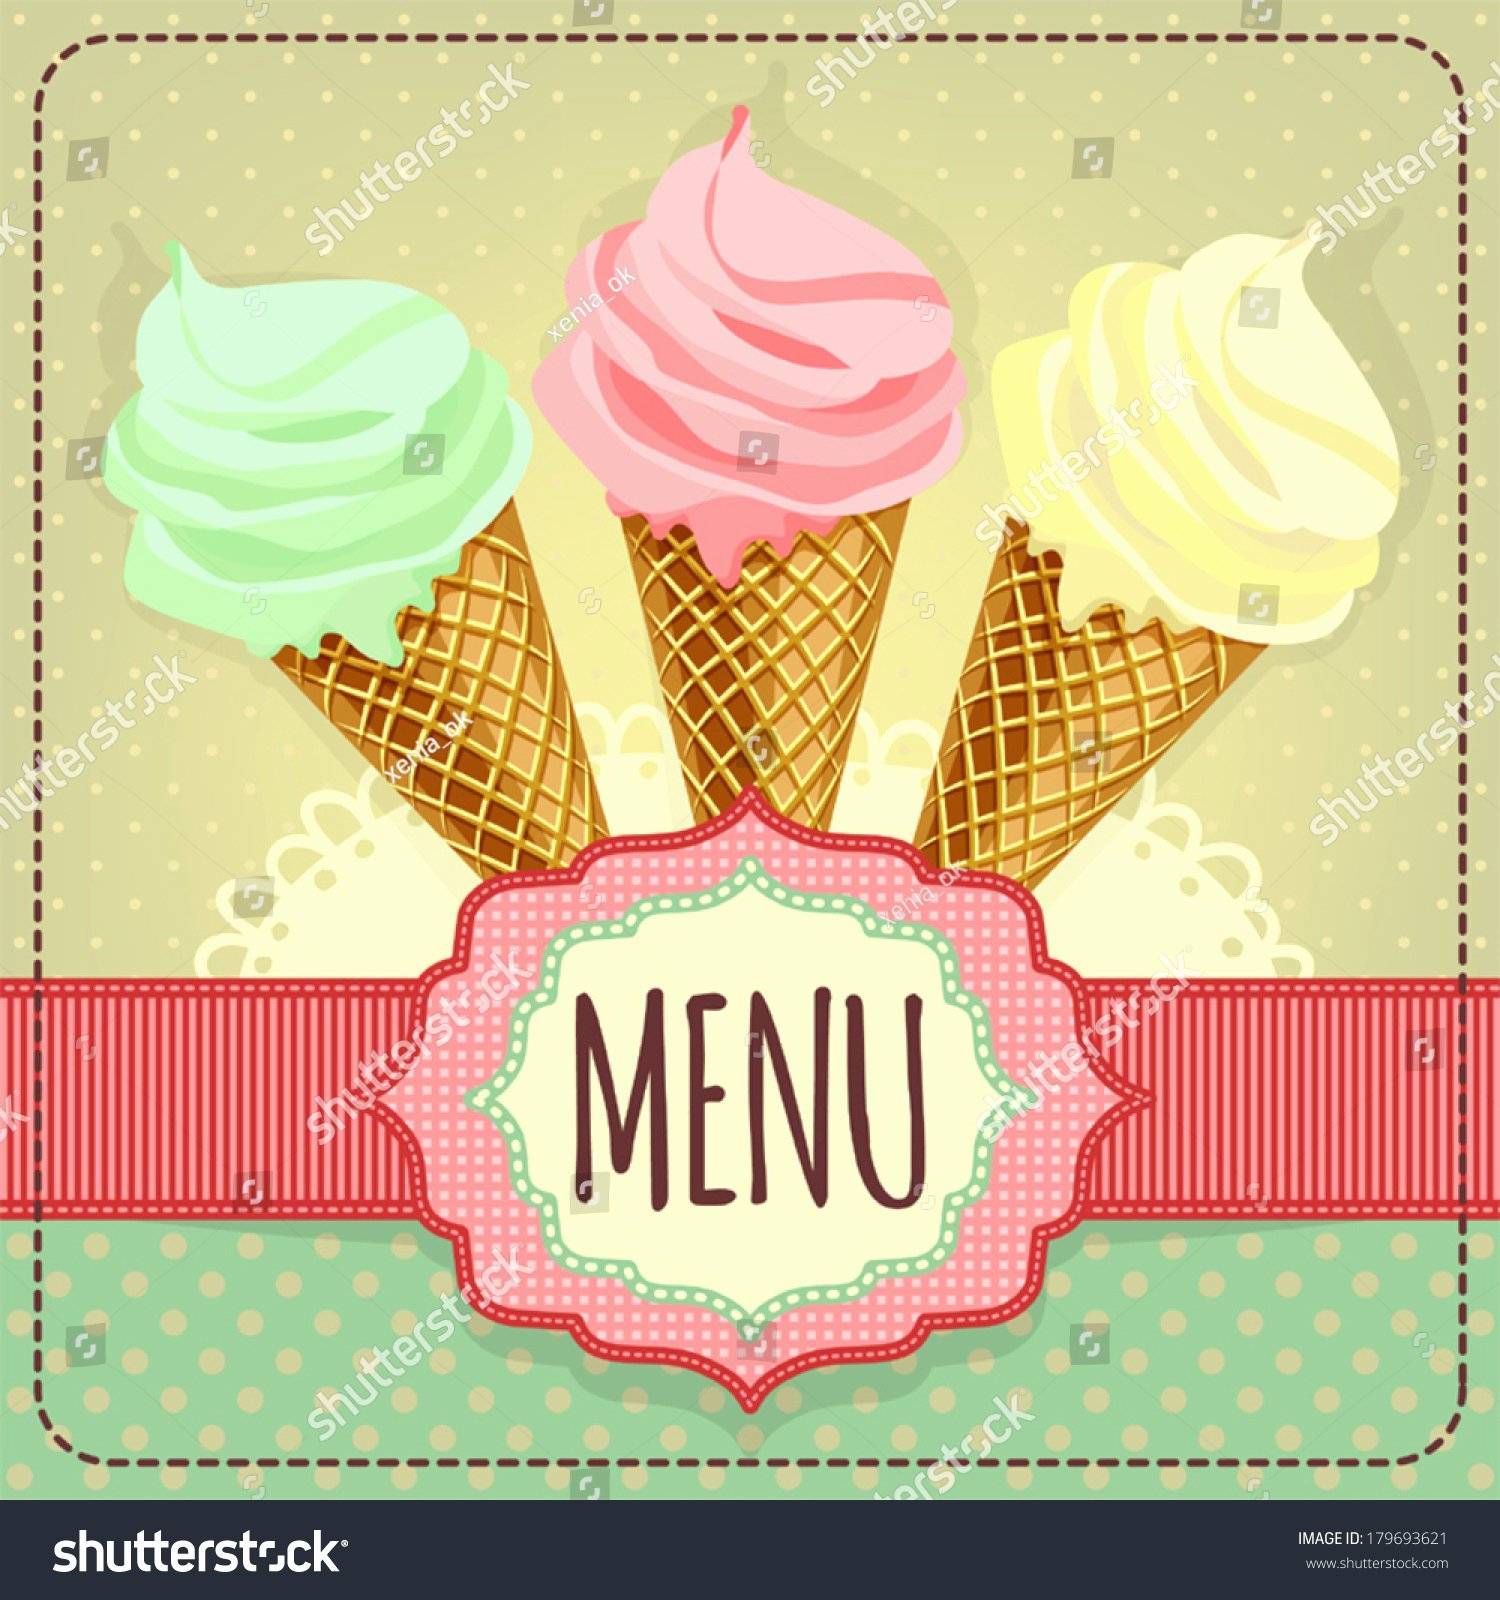 Ice Cream Menu Template Inspirational Card with Ice Cream Template for Menu Stock Vector Illustration Shutterstock